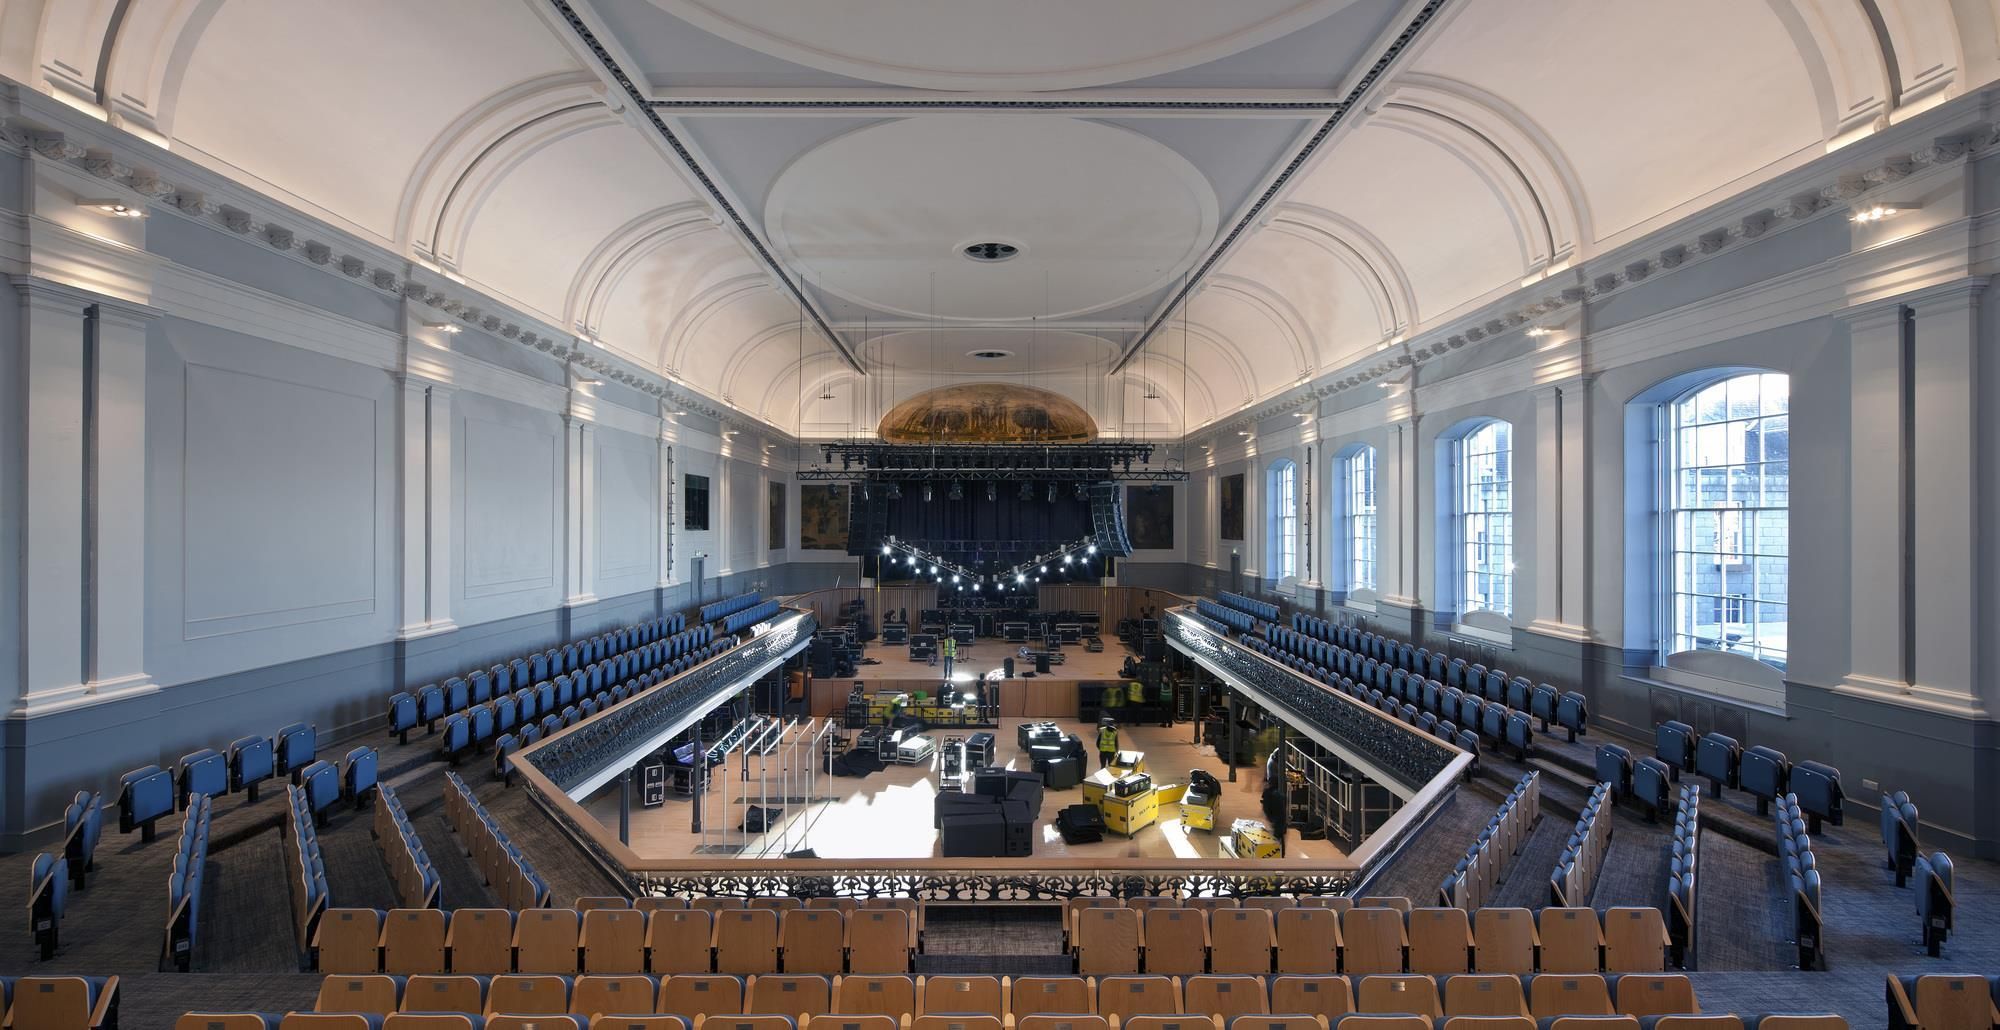 Bdp Completes Aberdeen Music Hall Refurb News Building